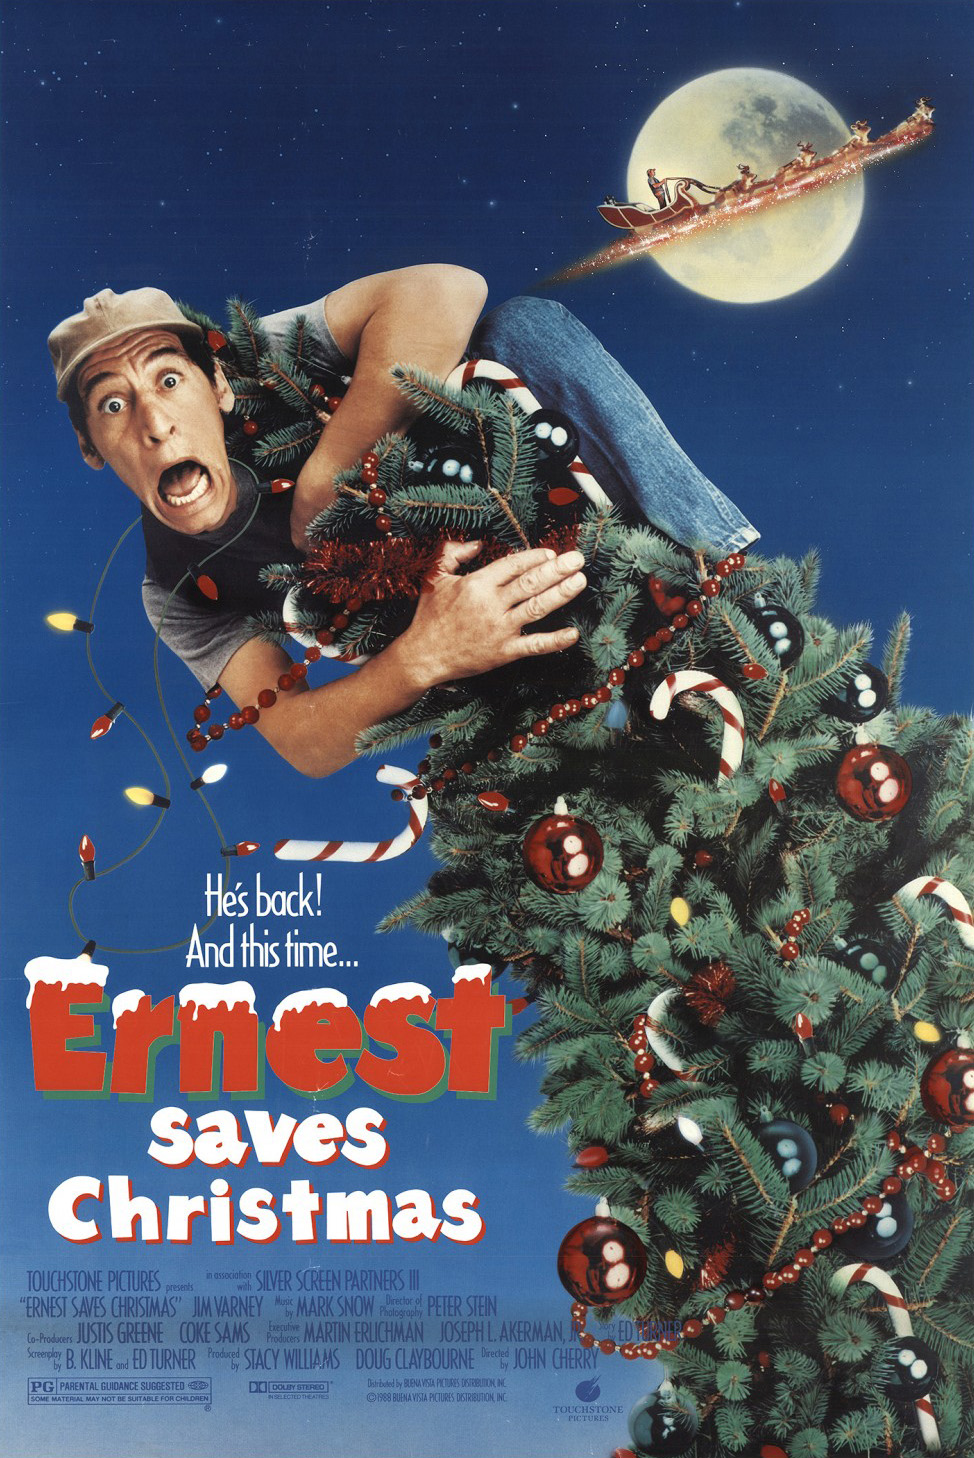 ernest saves christmas 1988 imdb - The Night They Saved Christmas Dvd